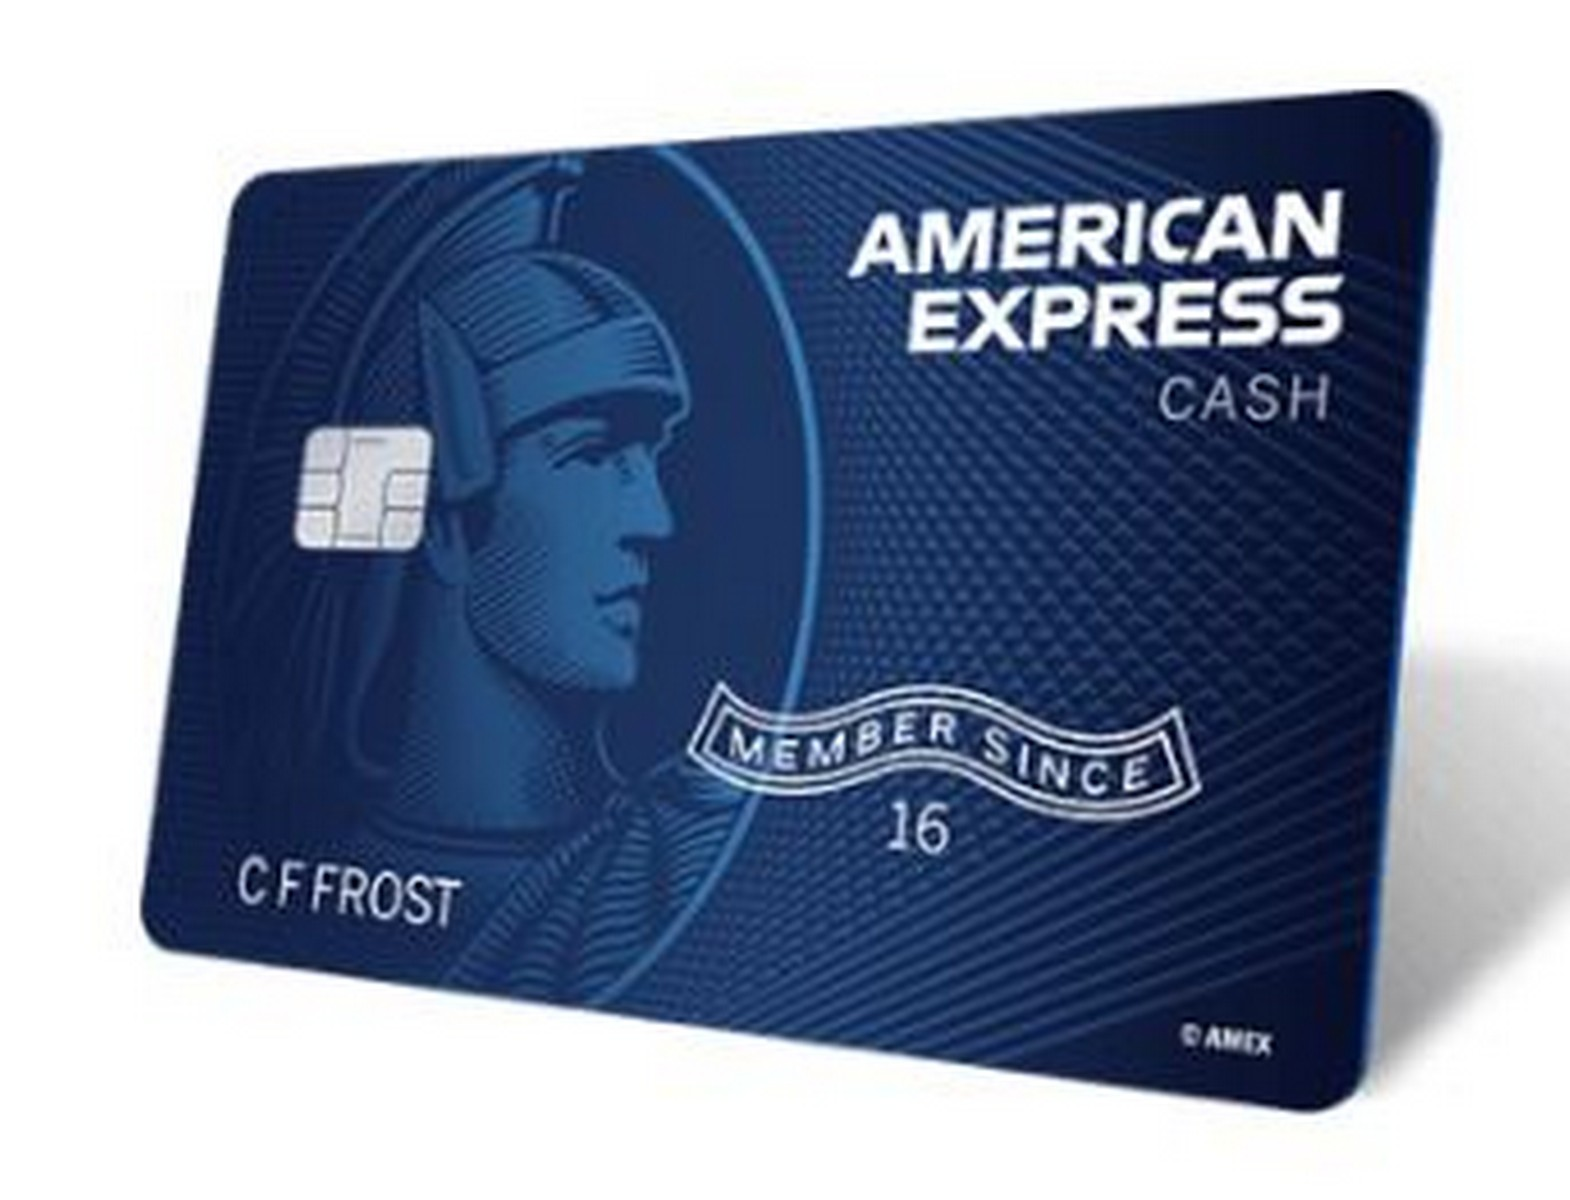 American Express Card Services >> American Express Cash Magnet Credit Card Review 300 Sign Up Bonus